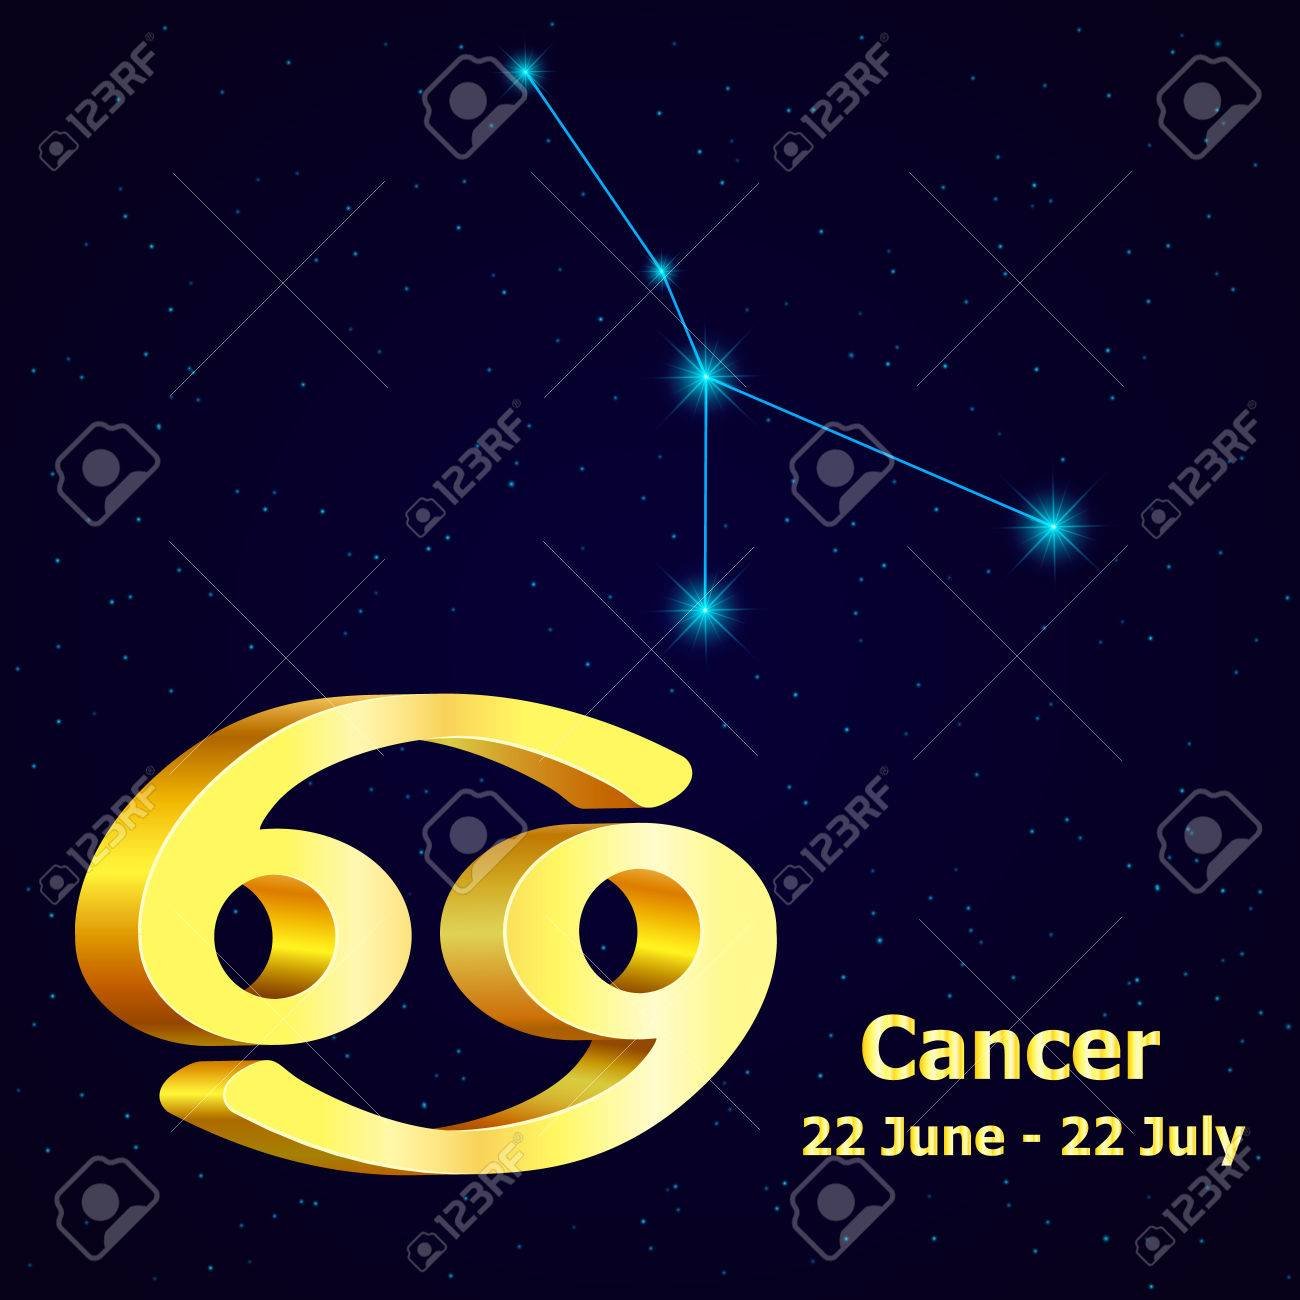 Vector zodiac sign cancer astrology gold cancer constellation vector zodiac sign cancer astrology gold cancer constellation stock vector 55789438 biocorpaavc Gallery